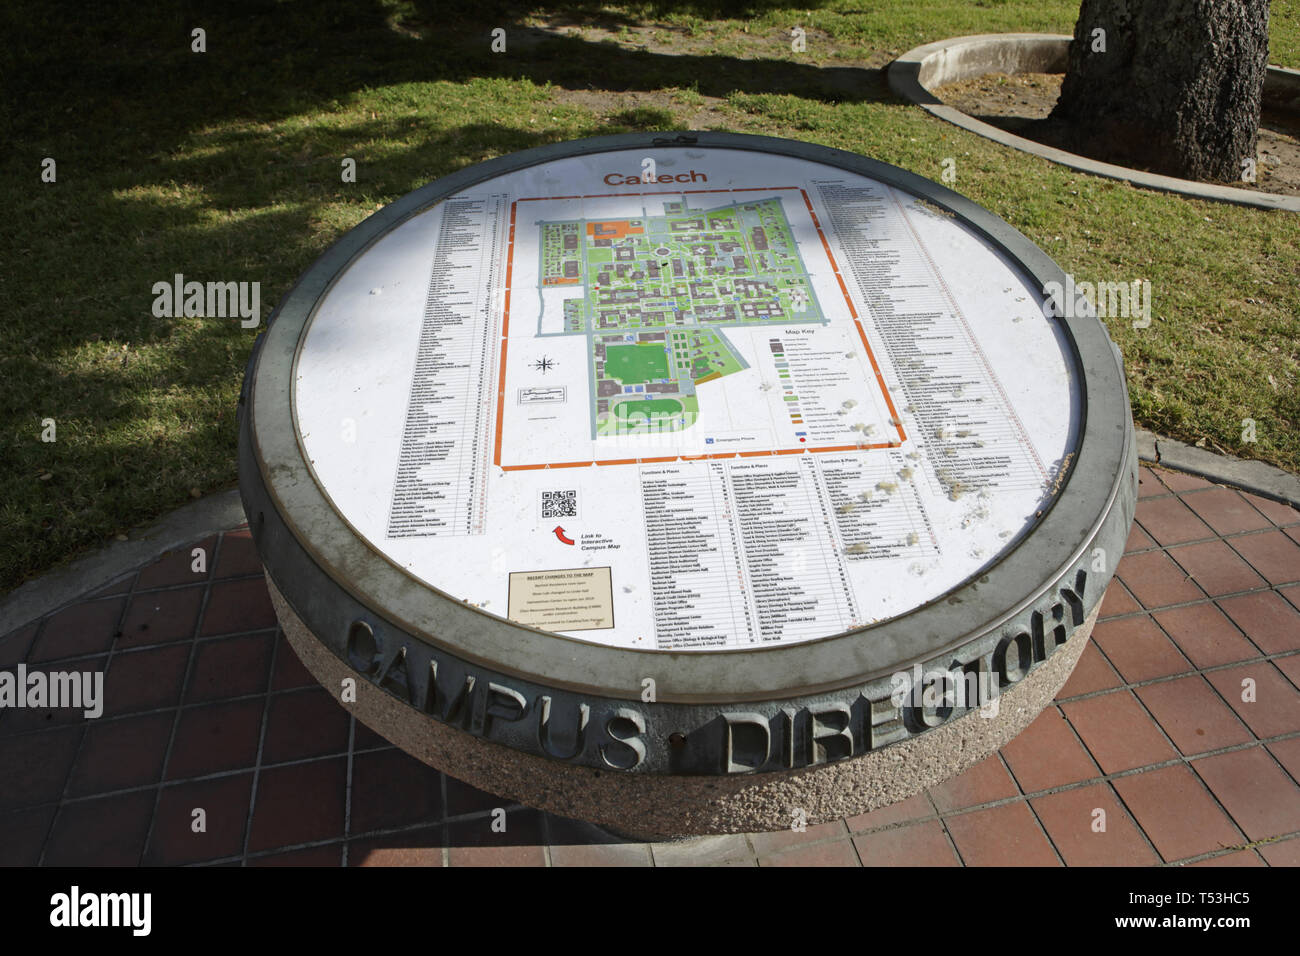 Caltech campus series, campus map Stock Photo: 244097957 - Alamy on